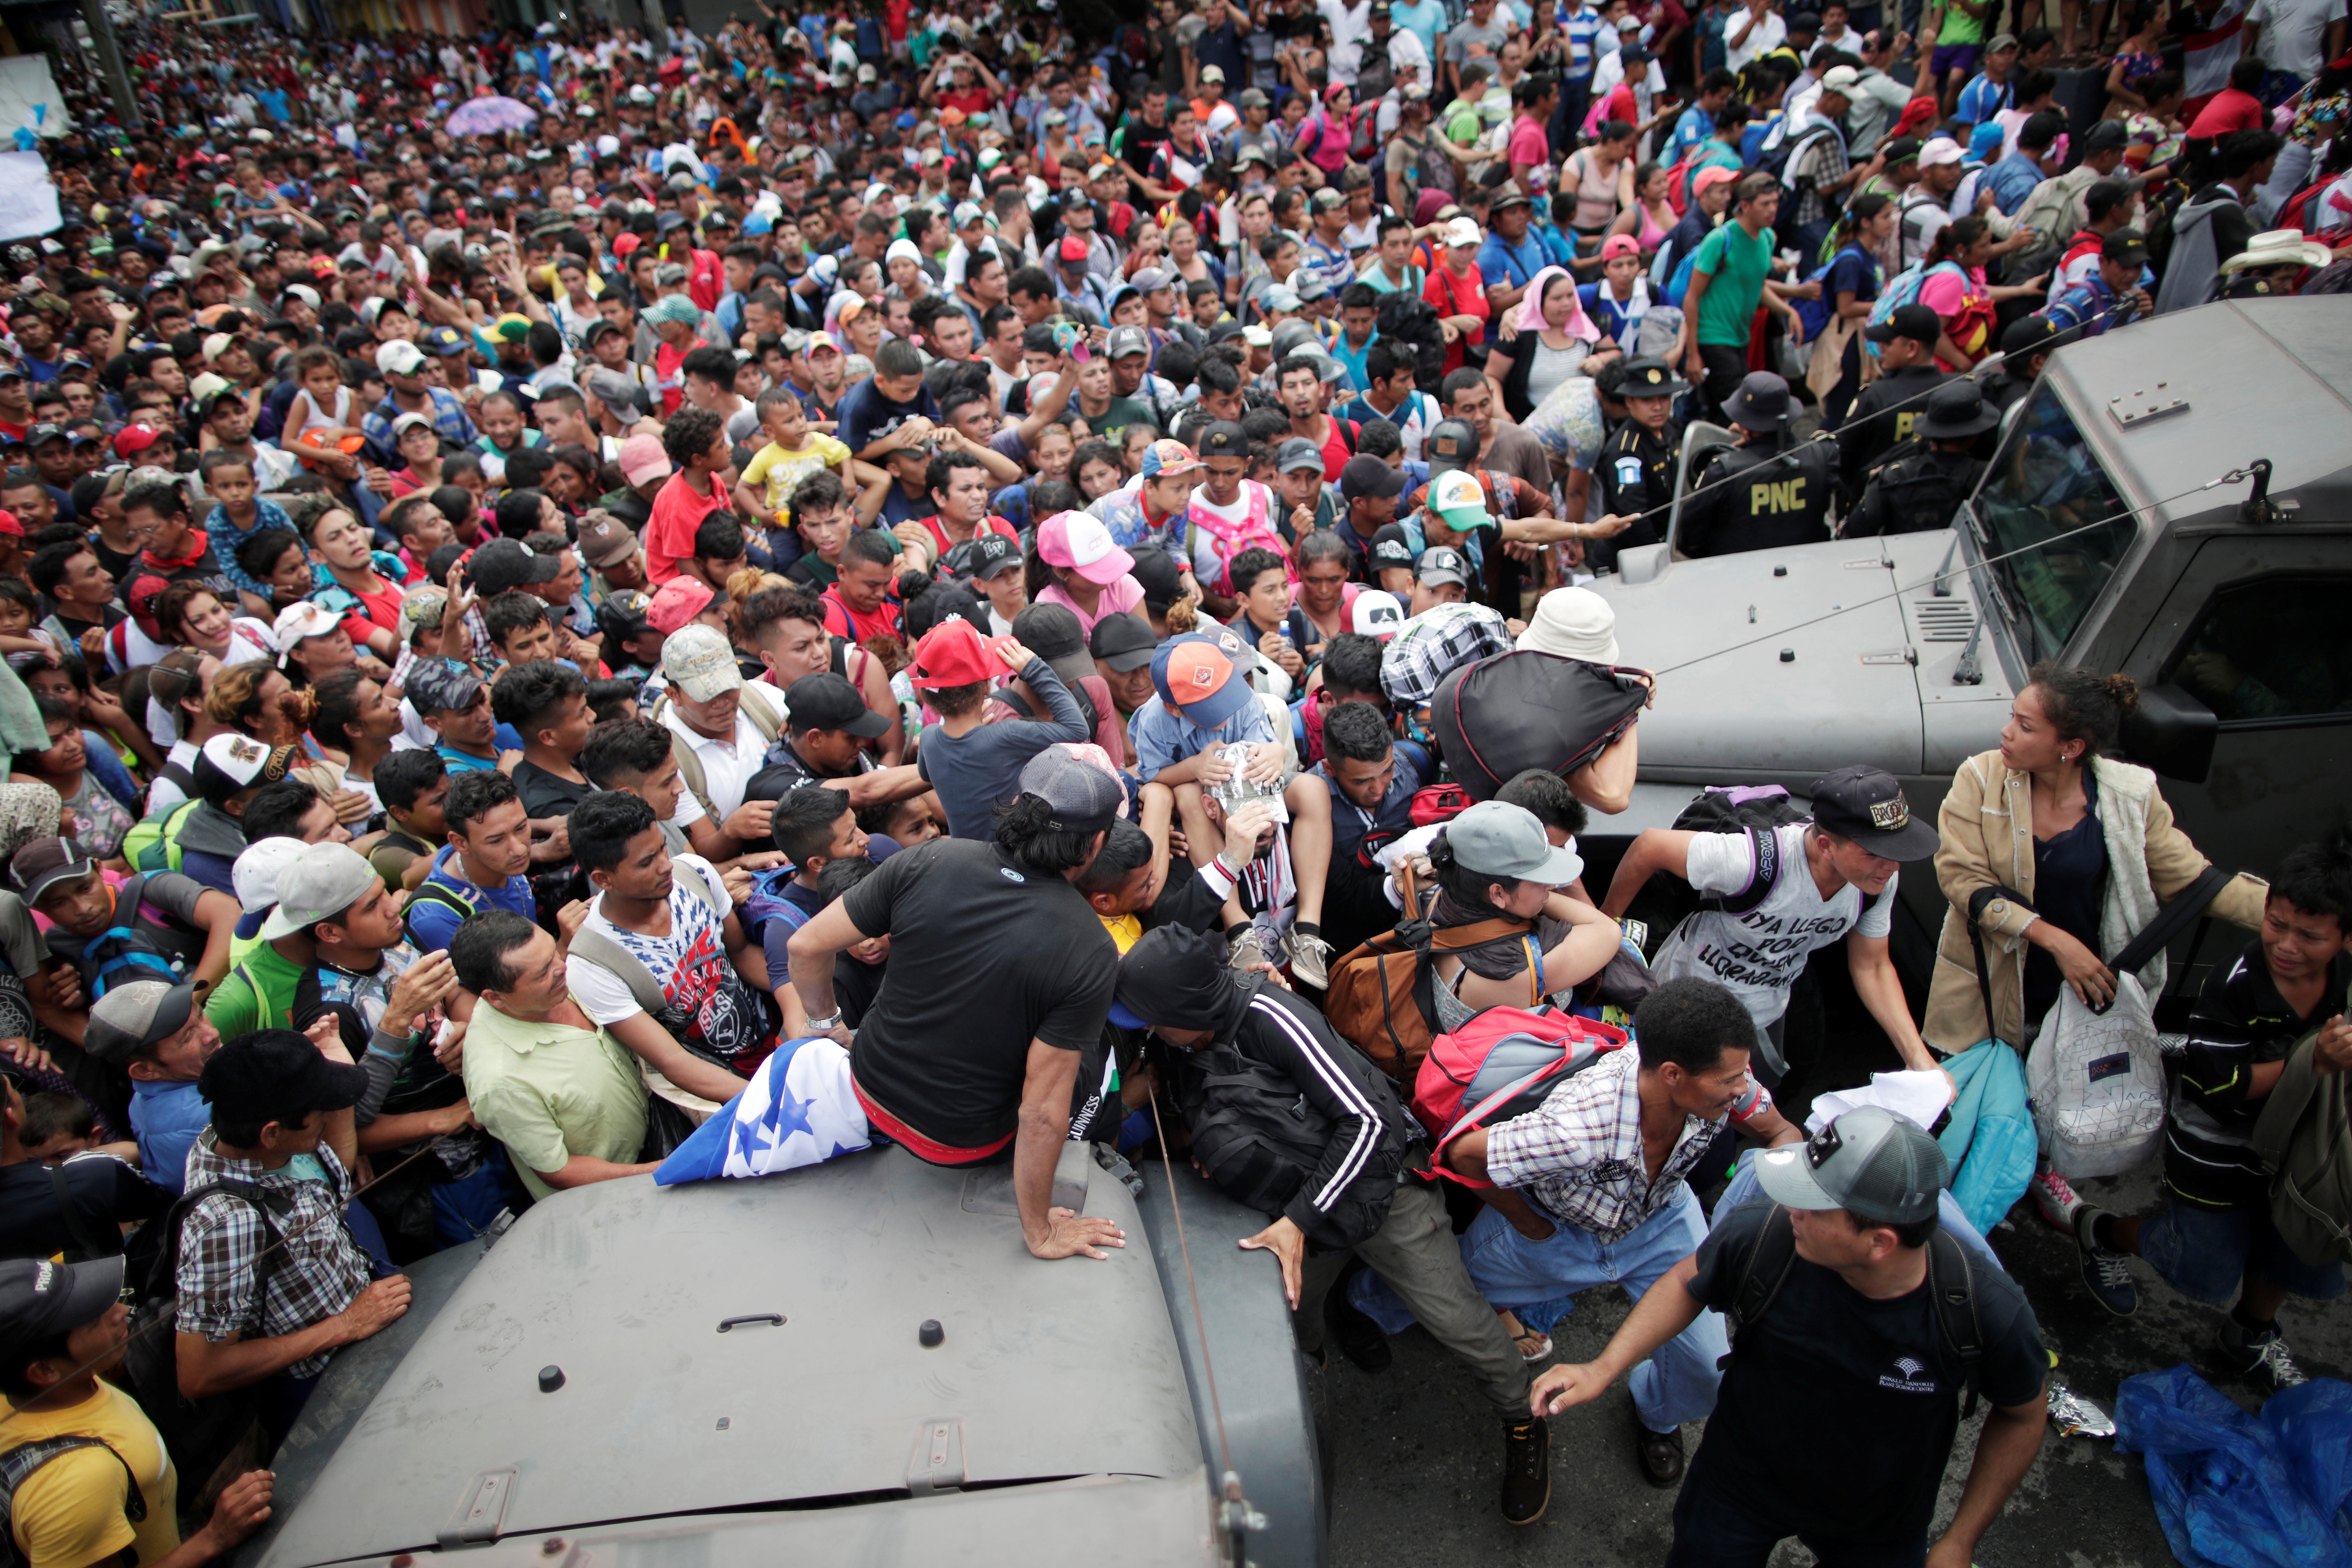 Honduran migrants, part of a caravan trying to reach the U.S., storm a border checkpoint to cross into Mexico, in Tecun Uman, Guatemala October 19, 2018. REUTERS/Ueslei Marcelino